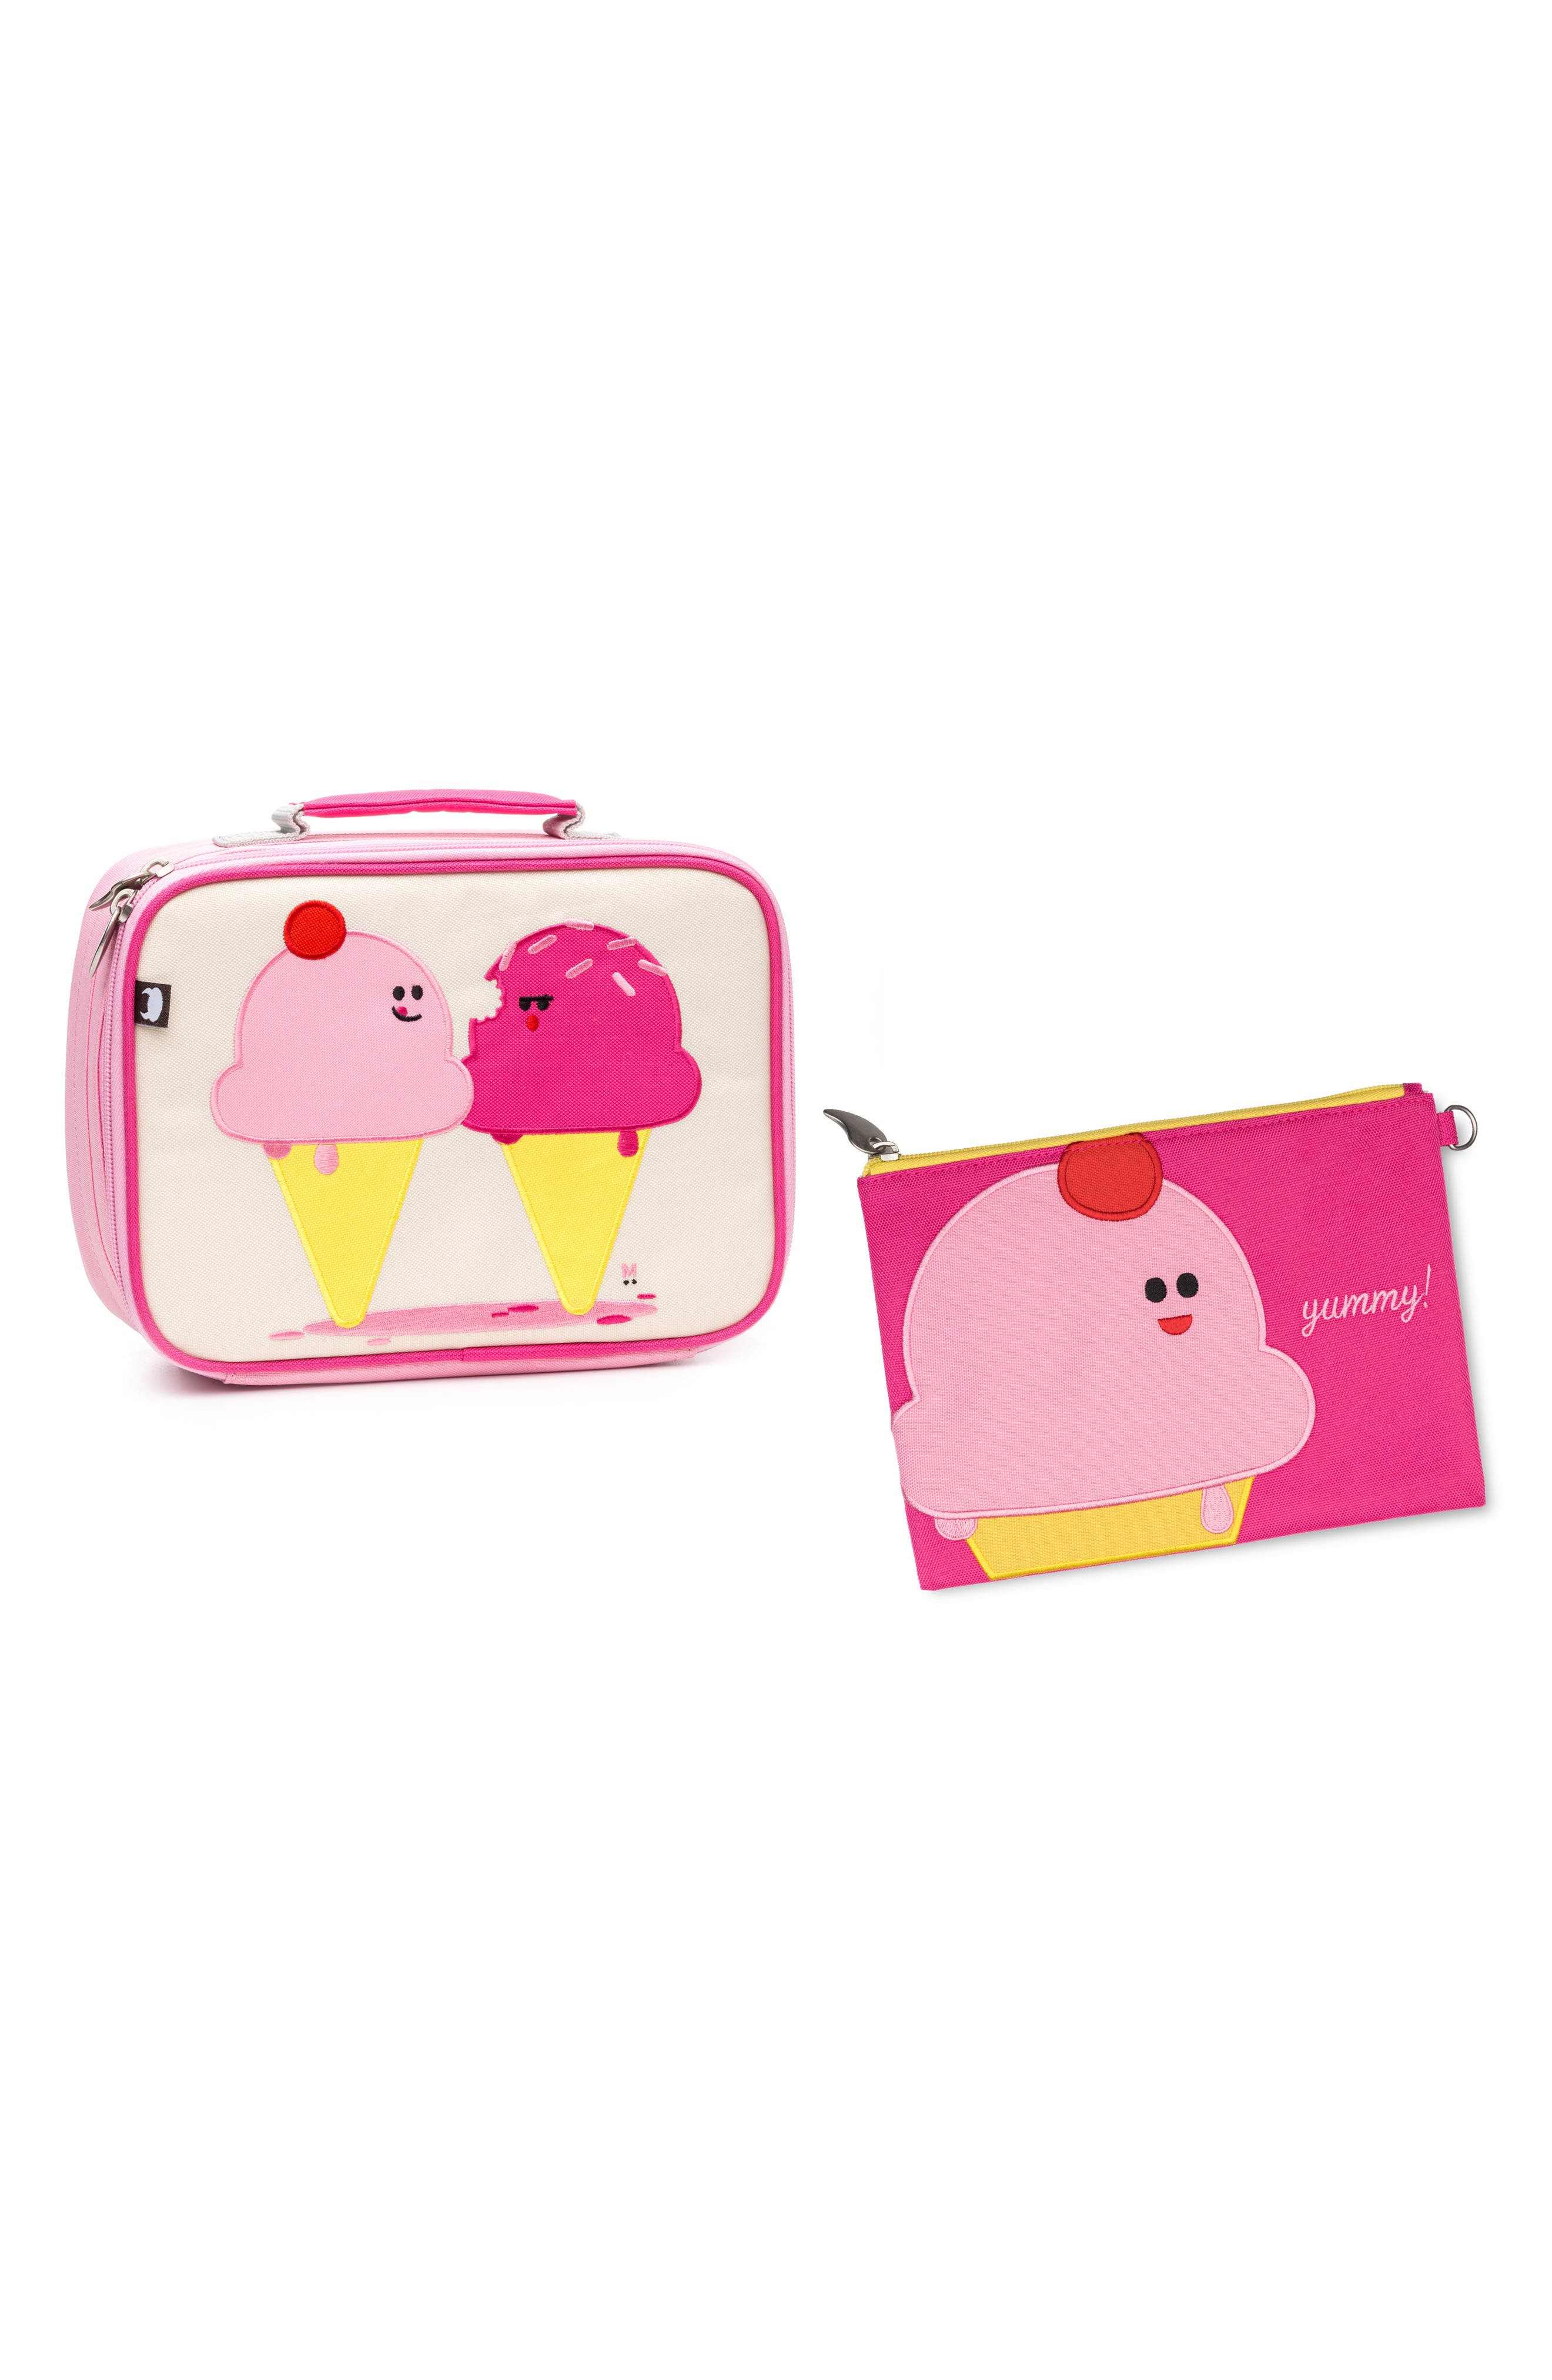 Beatrix New York Lunch Box & Travel Pouch Set